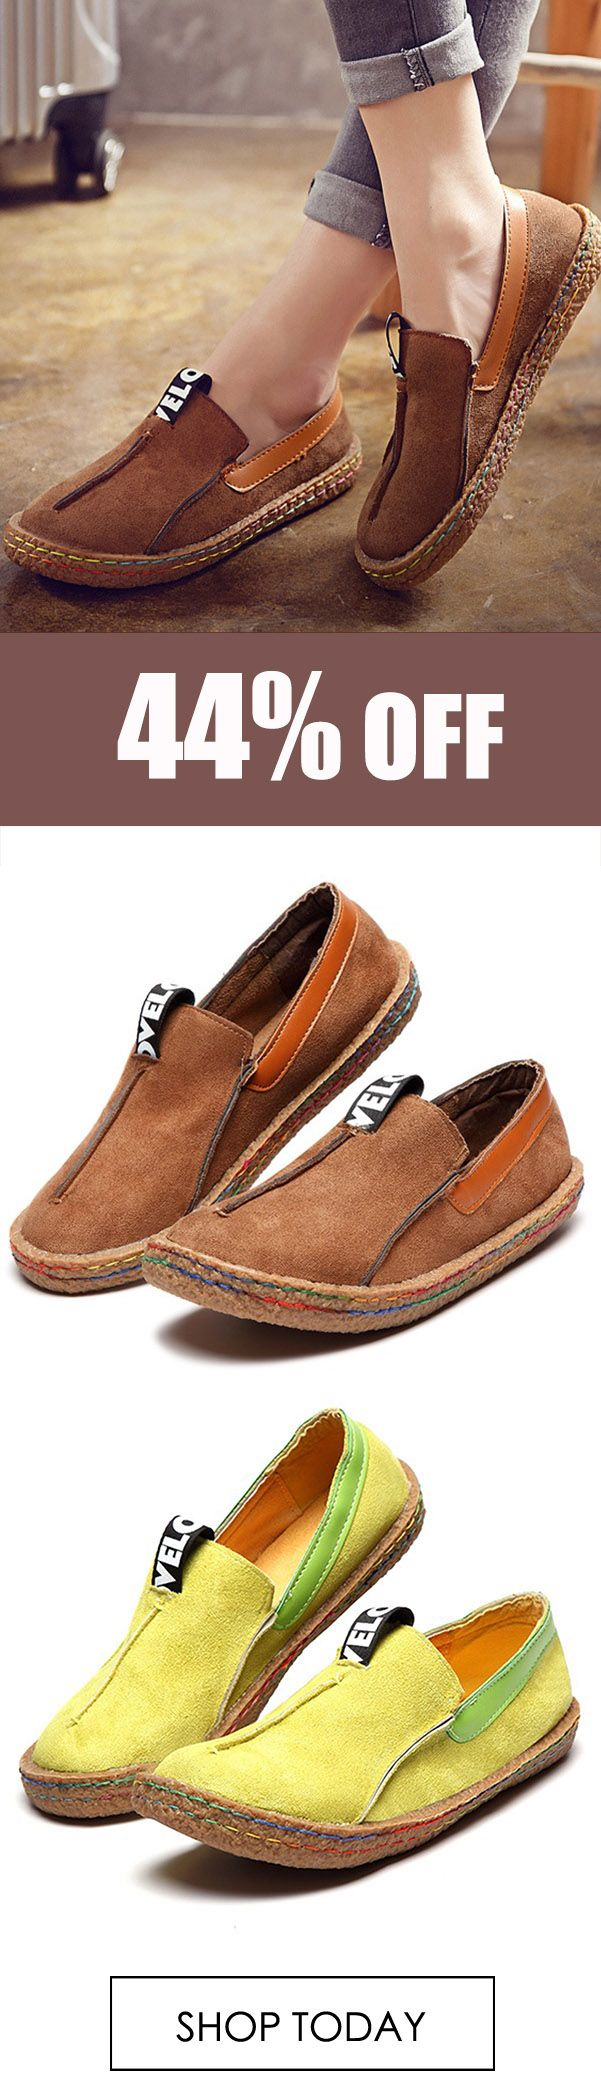 Big Size Women Casual Round Toe Soft Sole Pure Color Flat Loafers.  #fashion #shoes